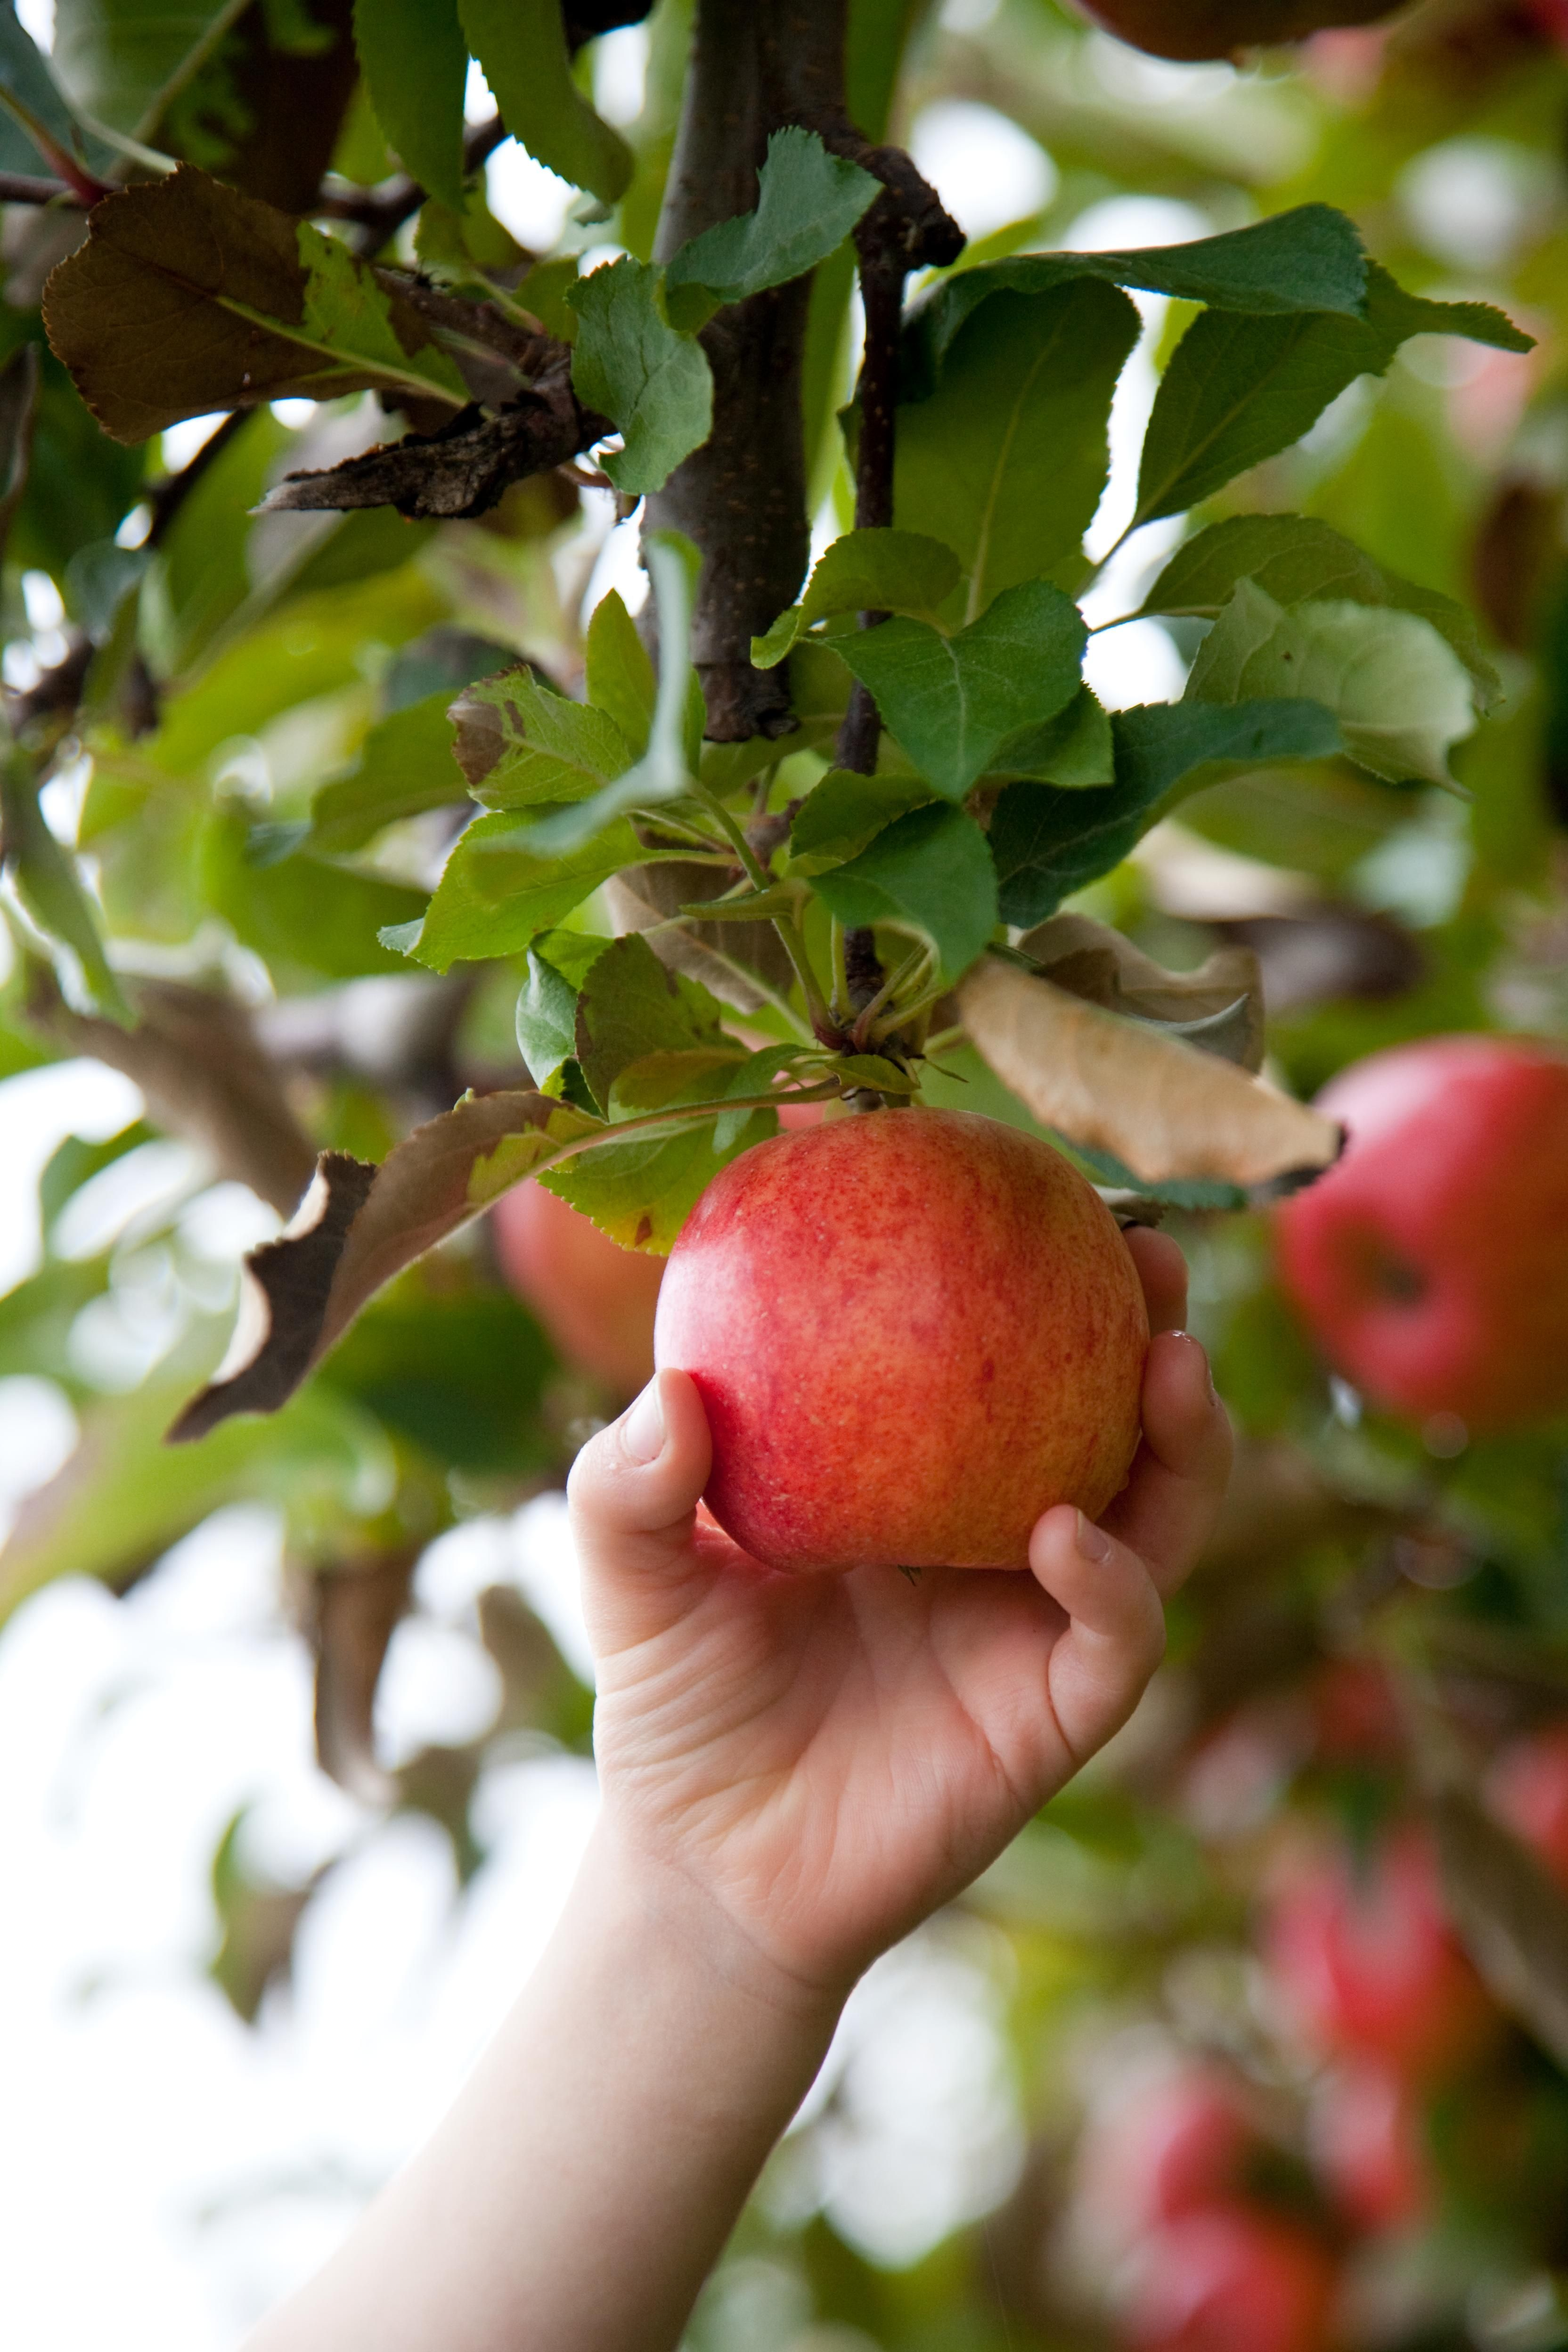 How to Plant Seeds from StoreBought Apples